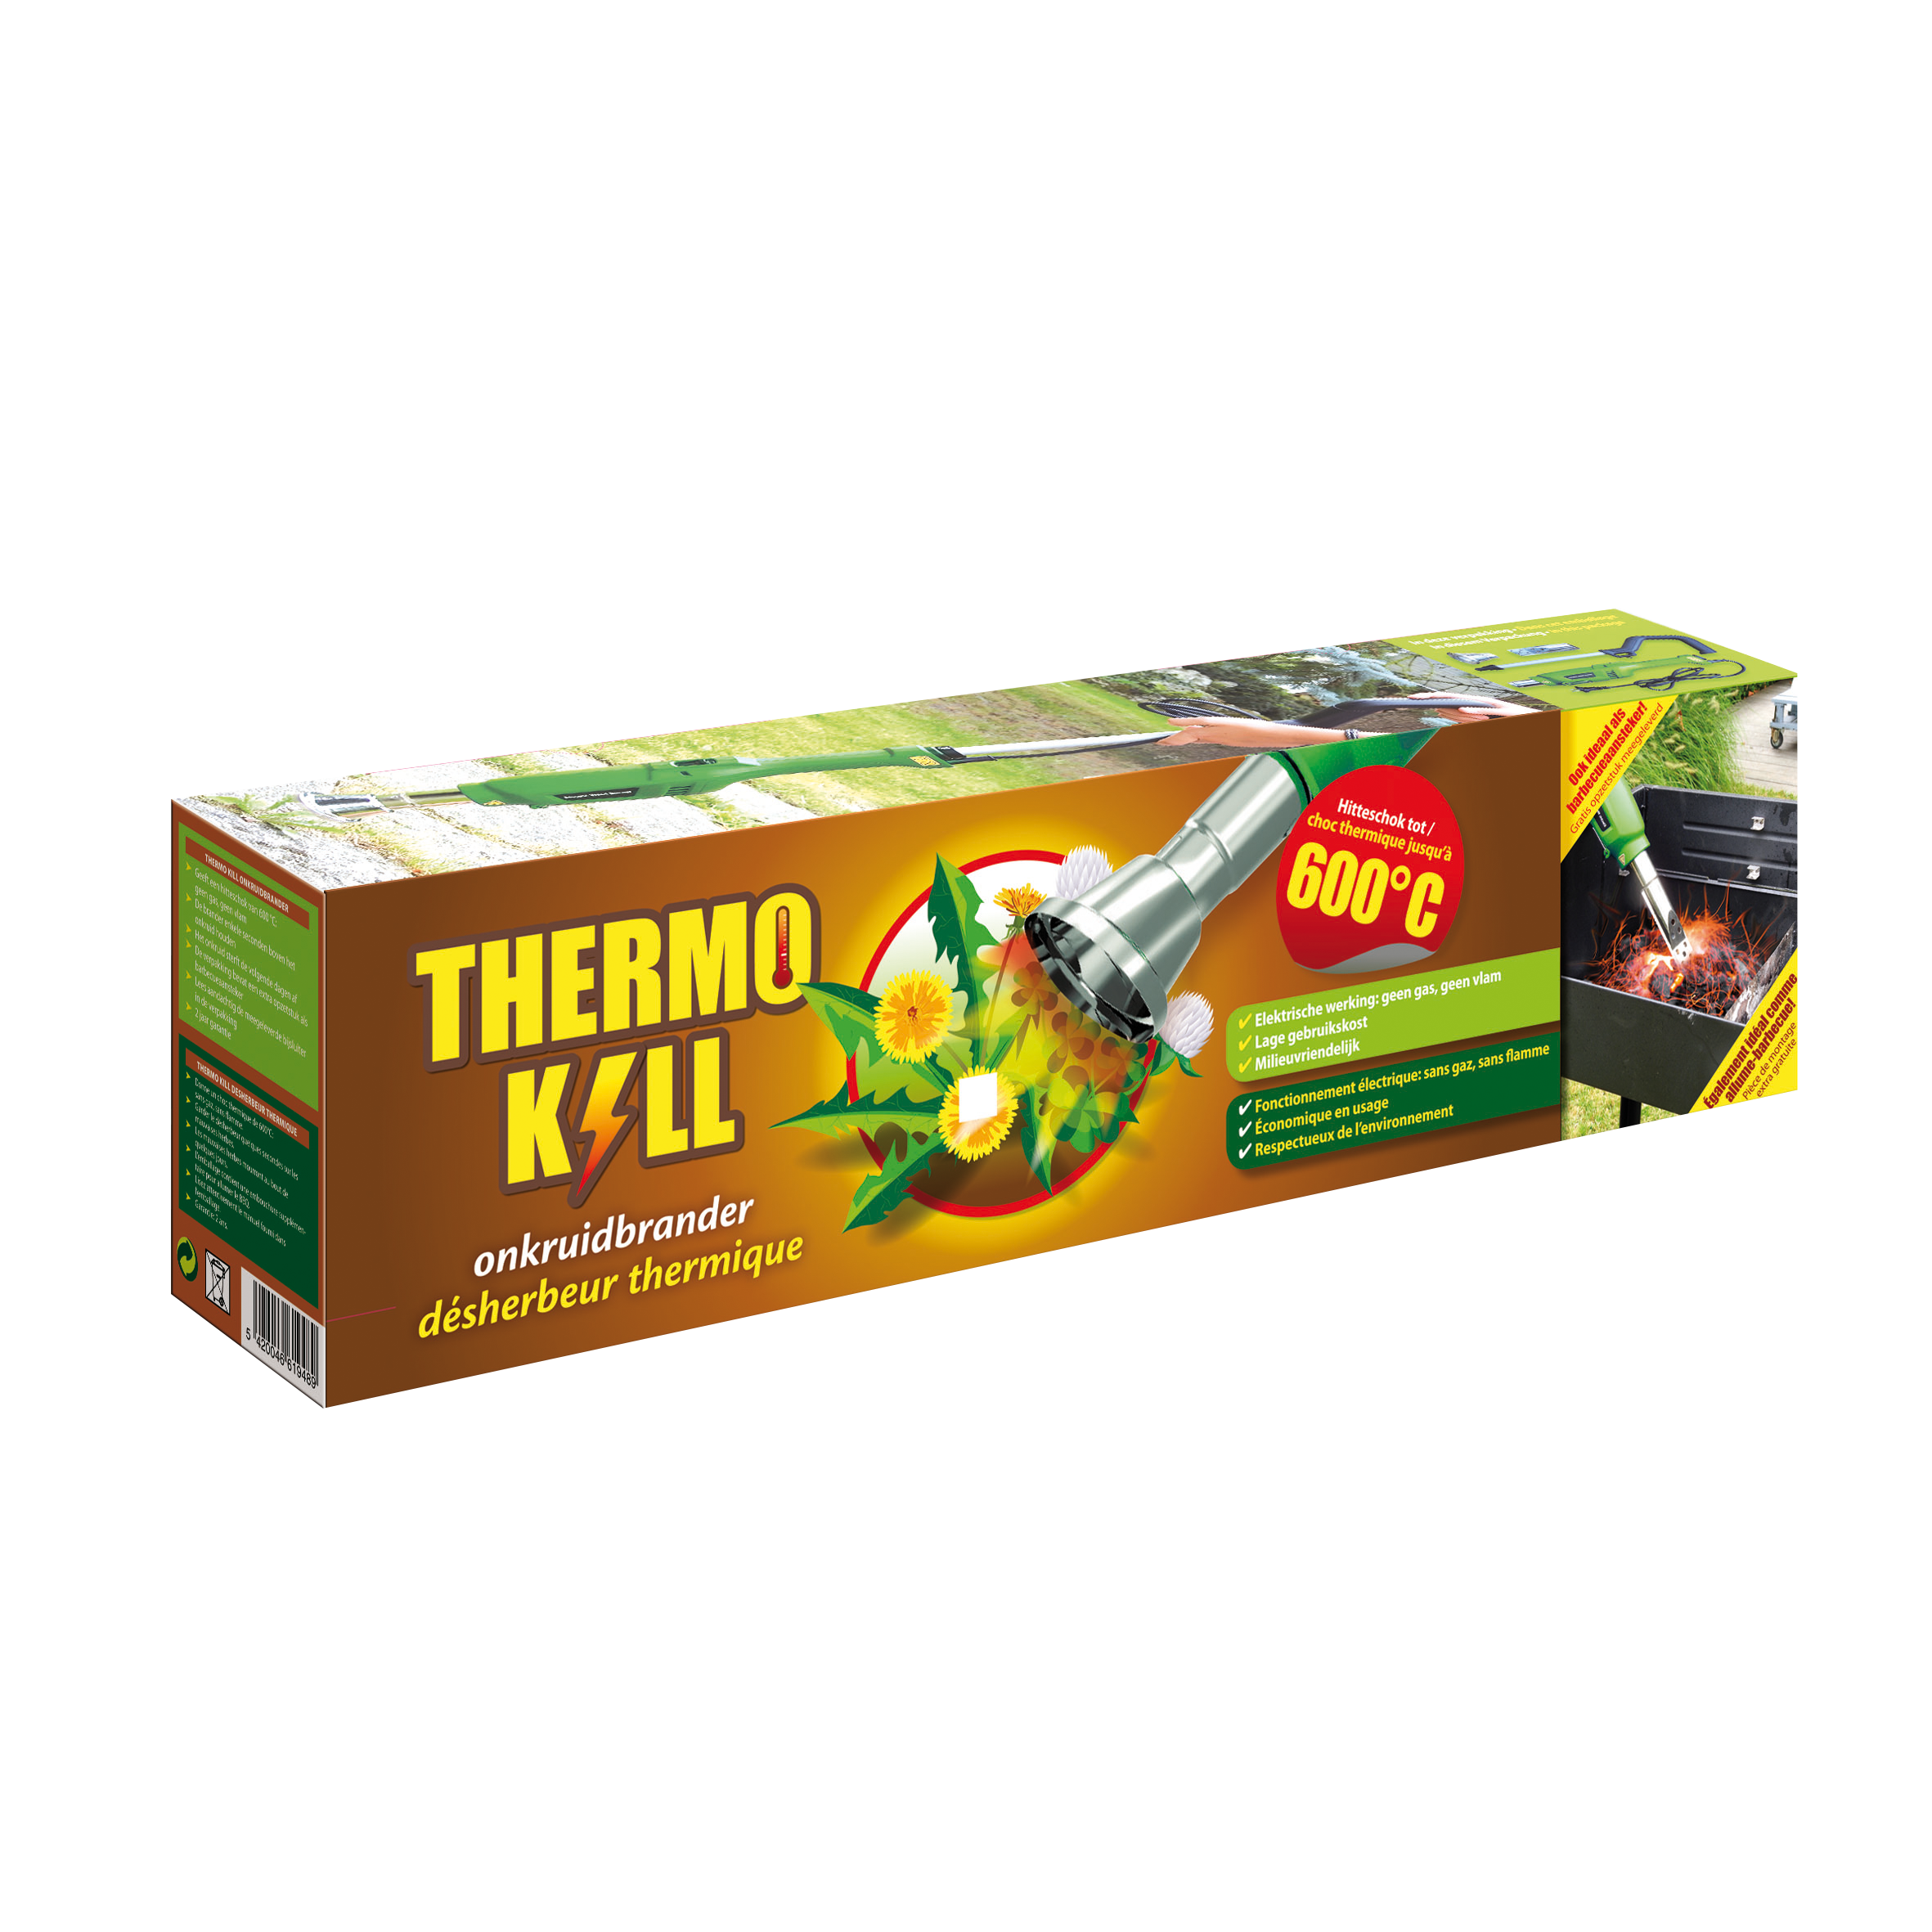 Thermo Kill Onkruidbrander image